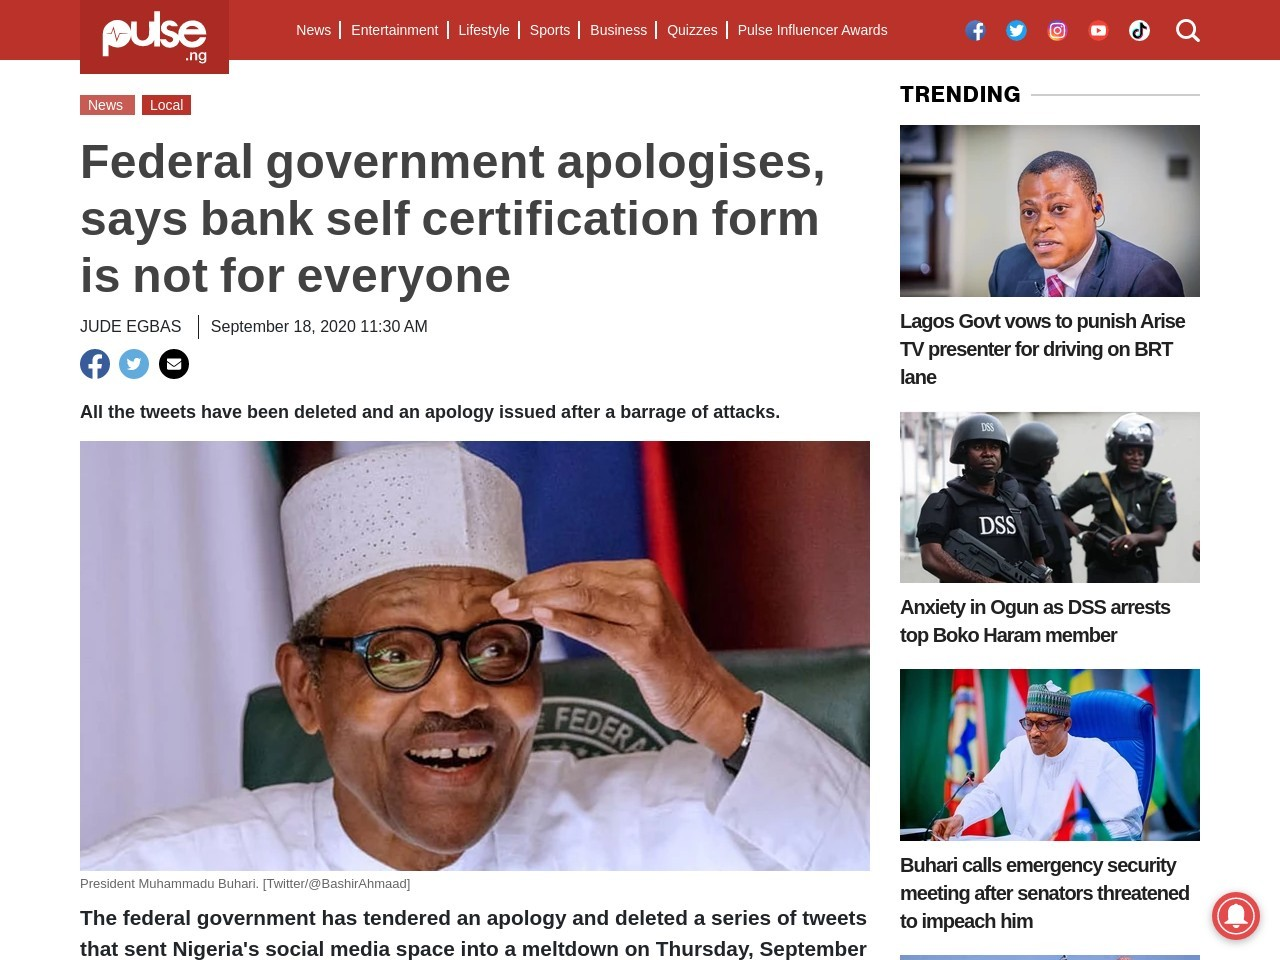 Federal government apologises, says bank self certification form is not for everyone